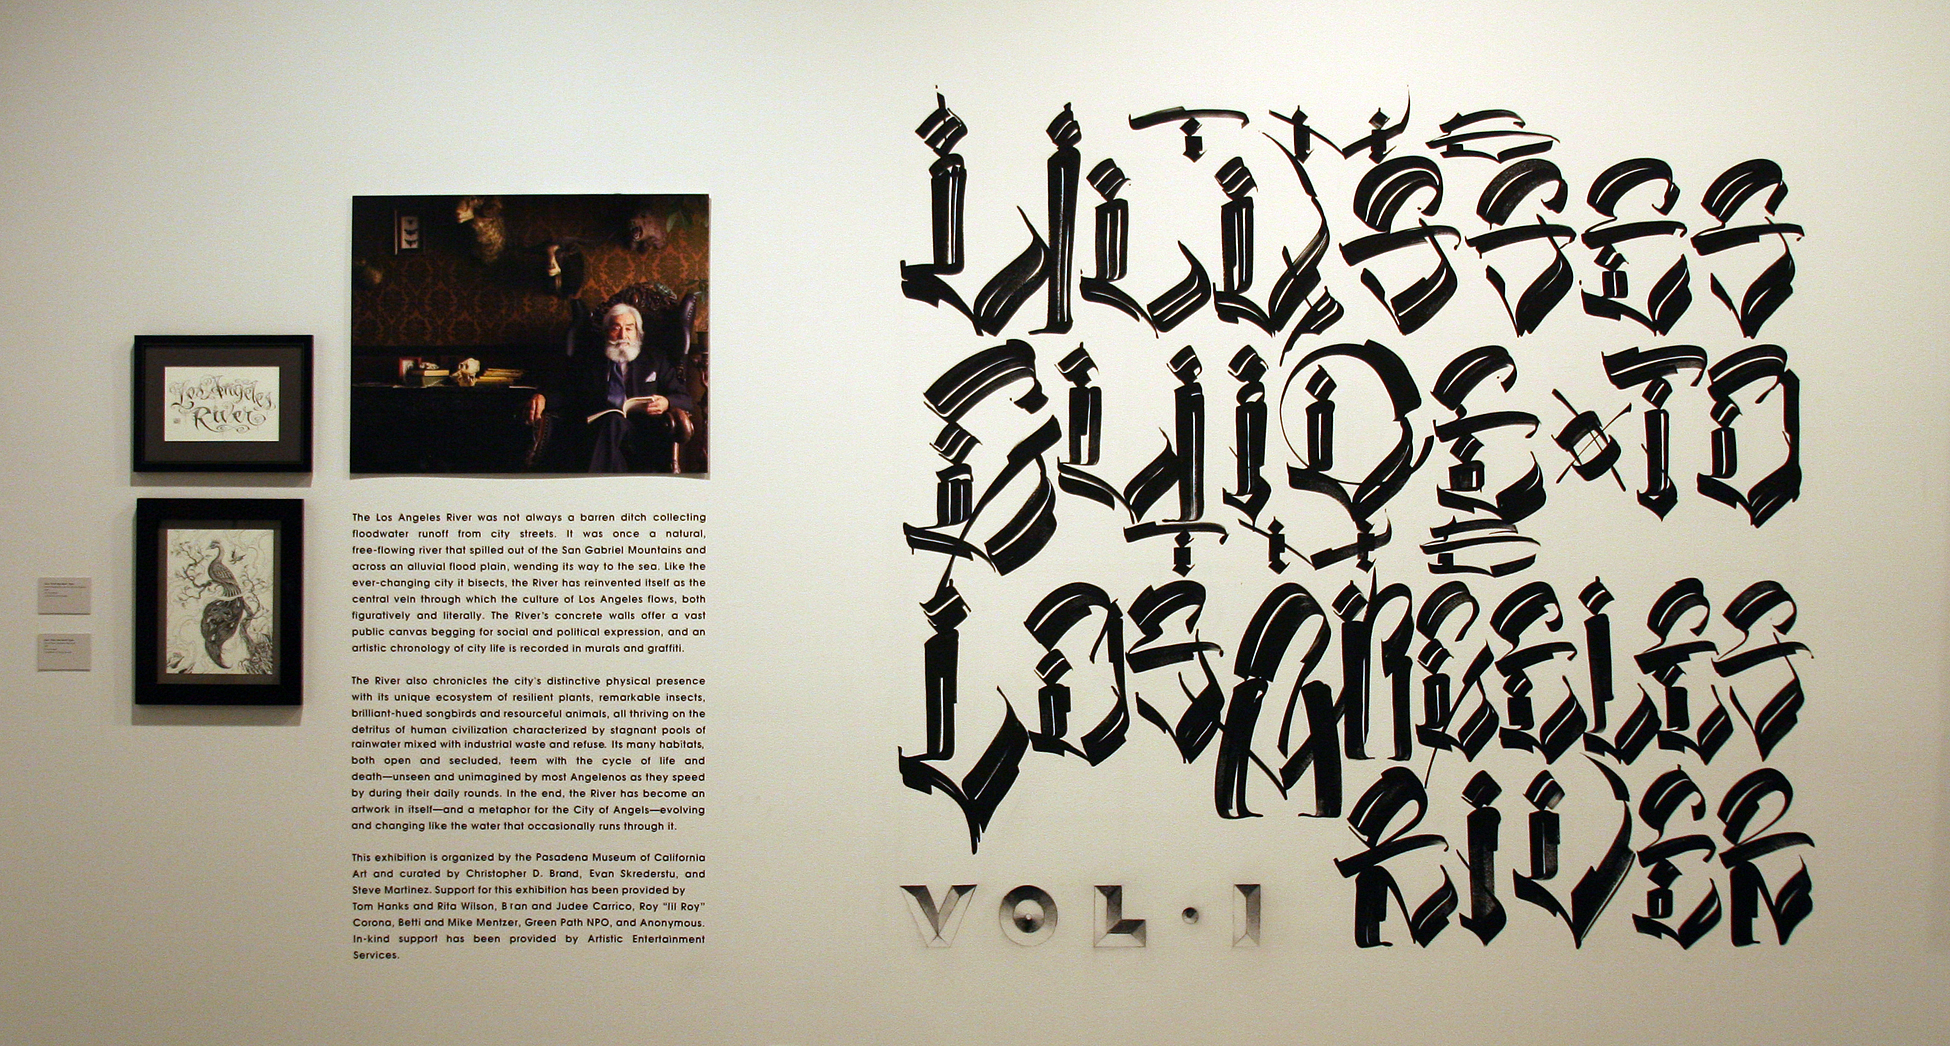 The Ulysses Guide to the Los Angeles River. Exhibition at the Pasadena Museum of California Art, February 13 — July 3, 2010. Installation view. Title Wall Lettering by Chaz Bojorquez